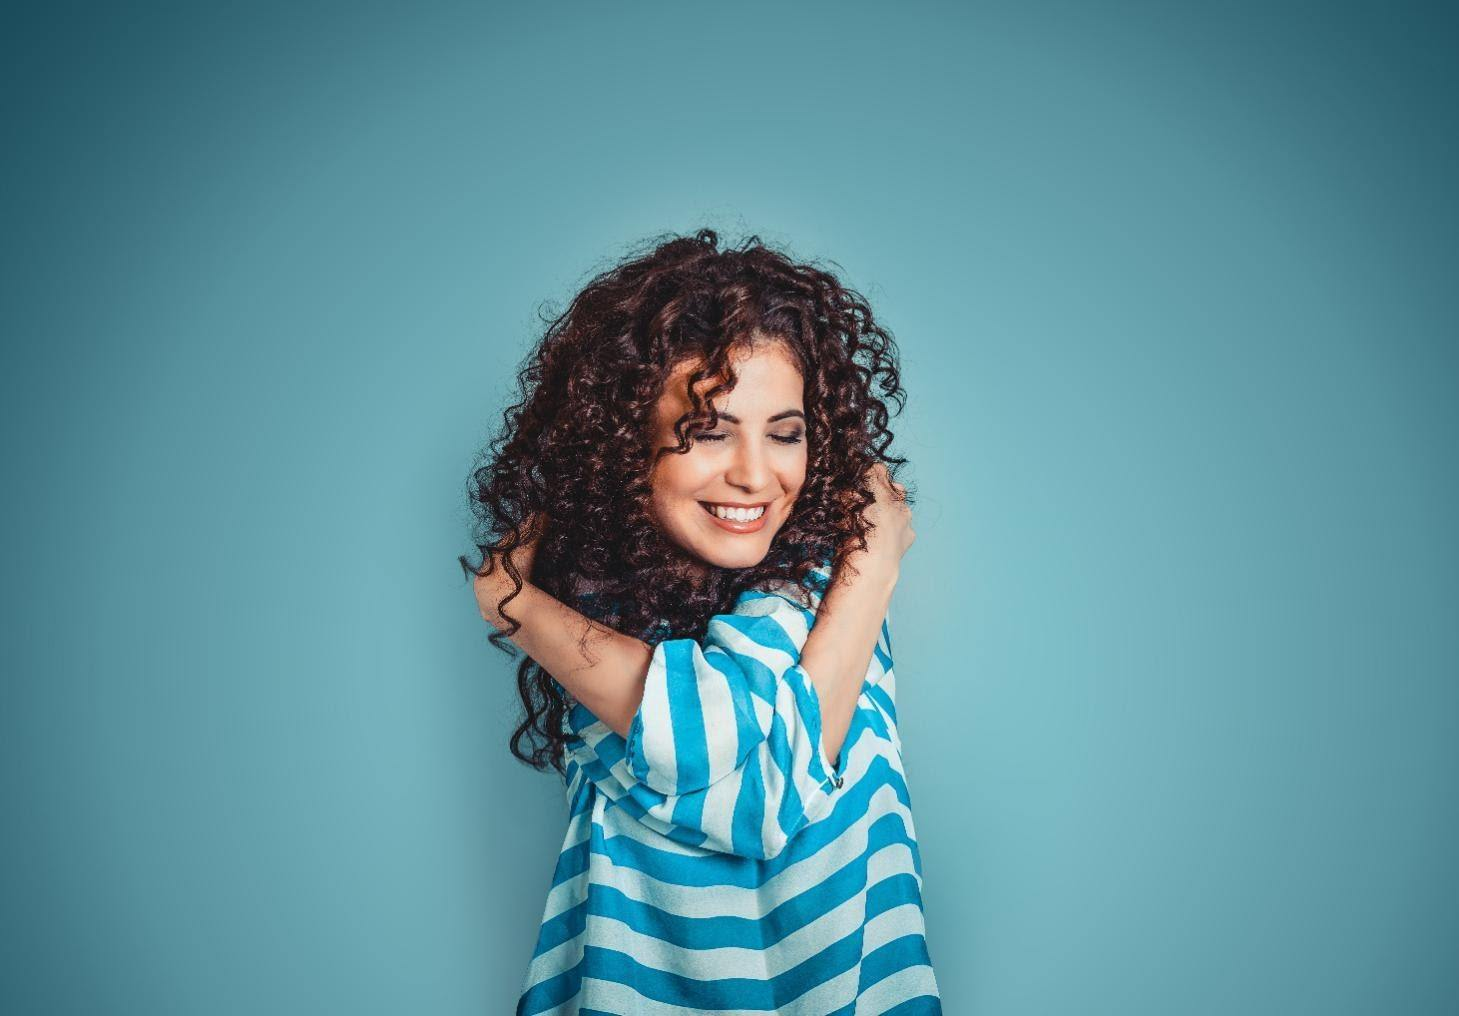 self-confidence booster woman hugging herself against blue wall